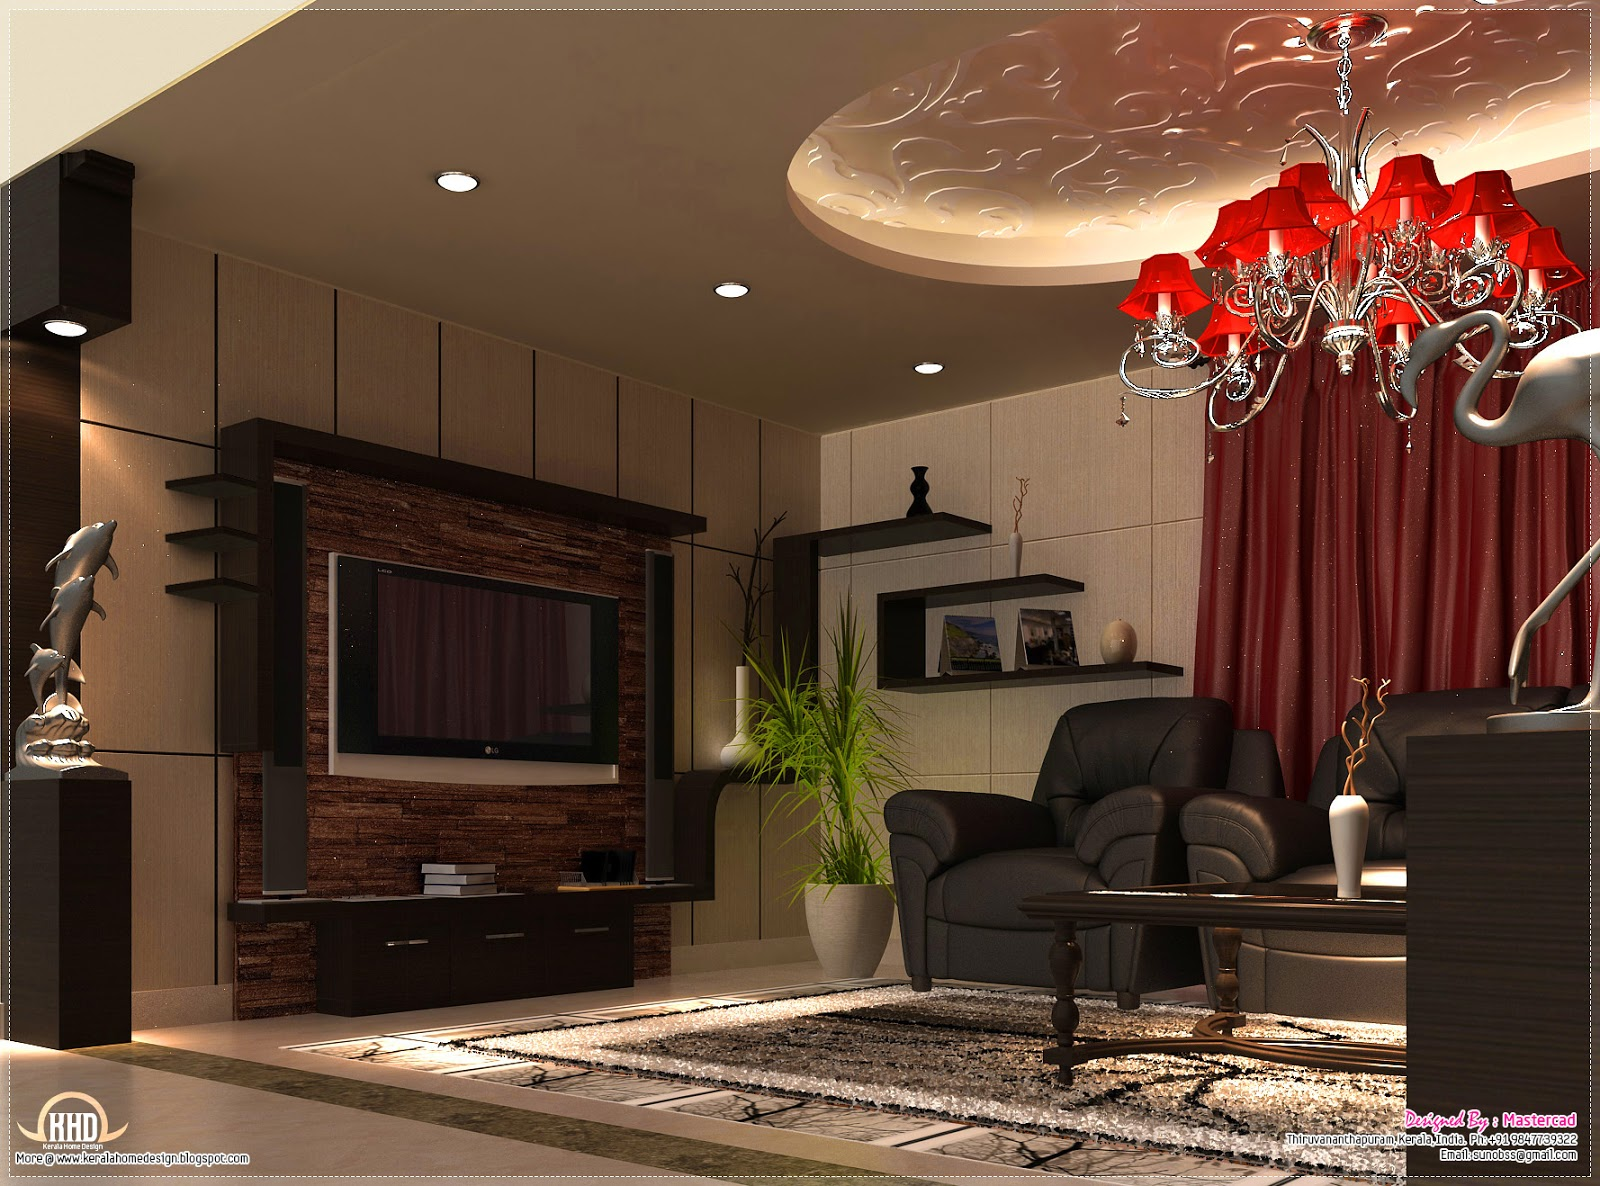 Home interior designs in nigeria ht cab110 storage kitchen for Nigerian living room designs